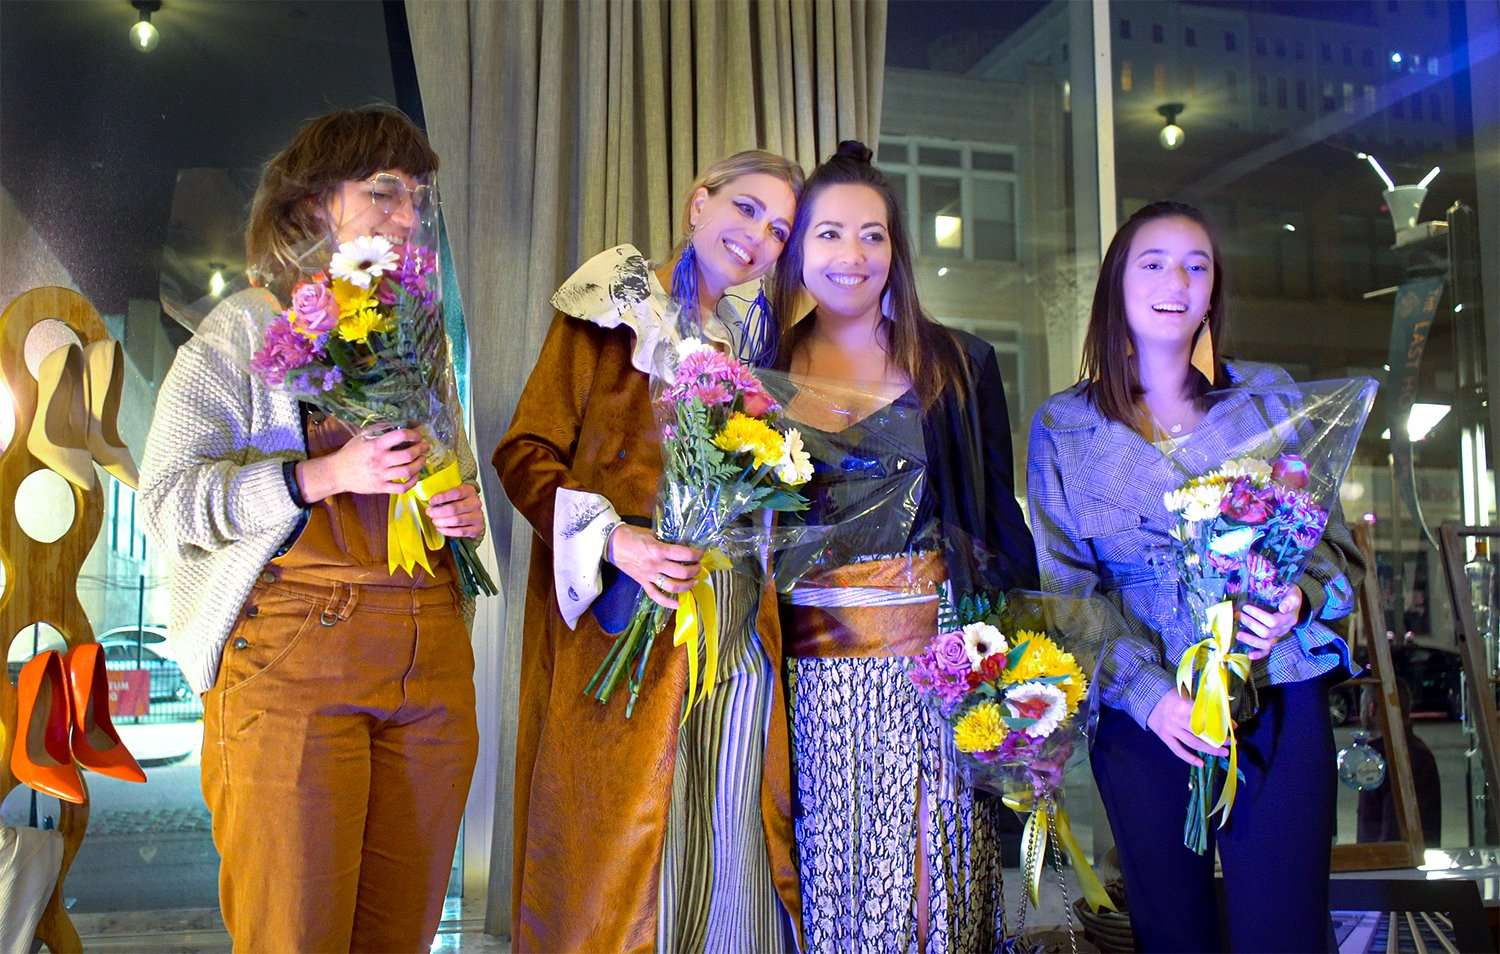 Barbara Bultman and Galina Angheluta, Megan Blanchard win Fashion Anarchy Final in 2019 at The Last Hotel in St. Louis. credit craig currie